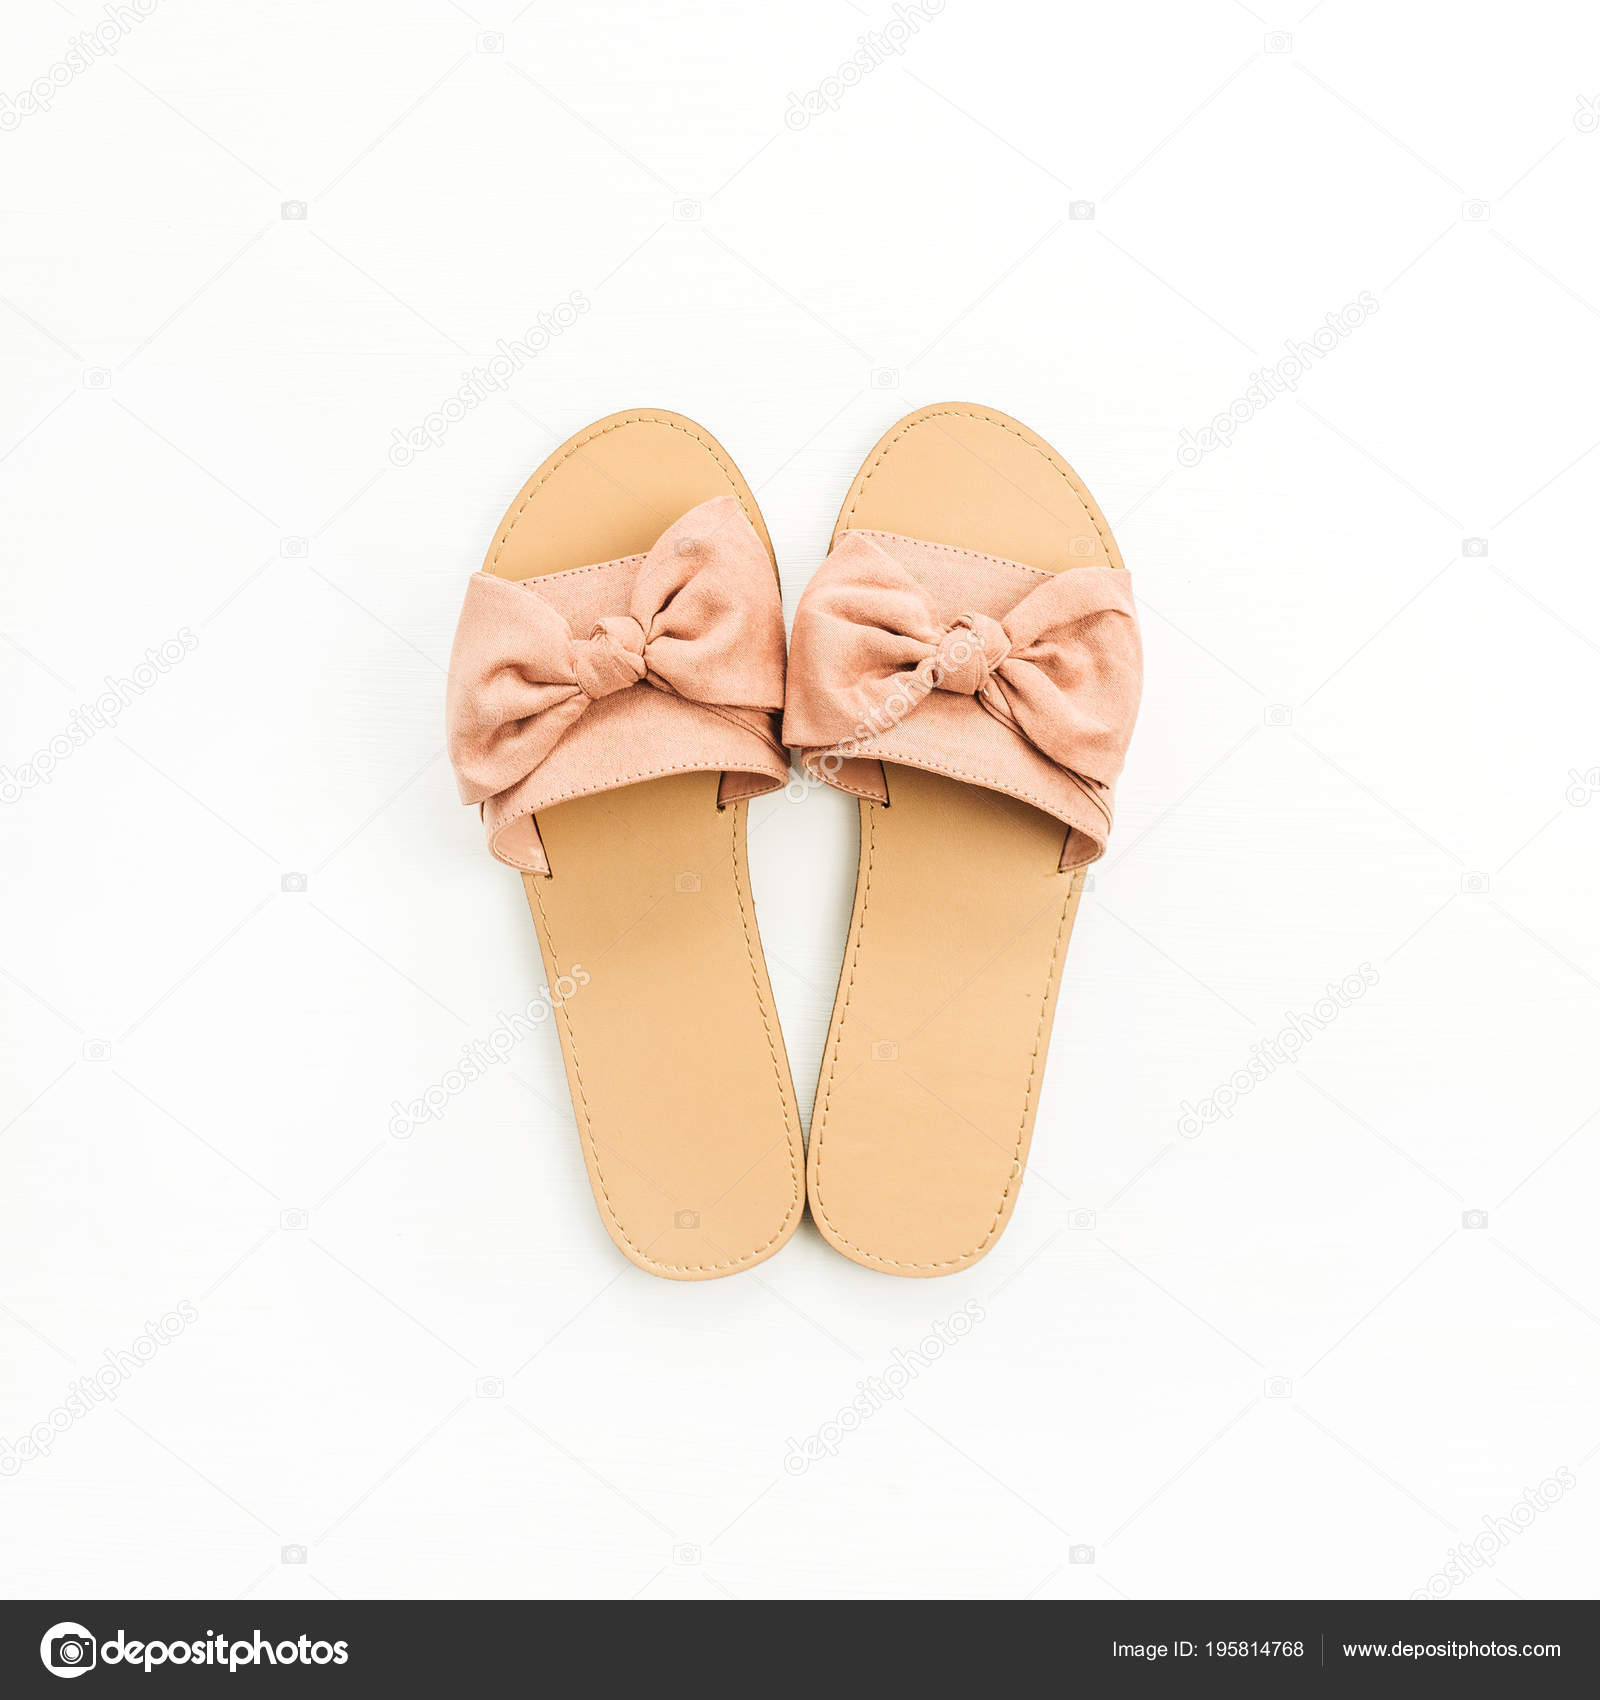 bd501df21 Pink Women Slippers Isolated White Background Flat Lay Top View — Stock  Photo